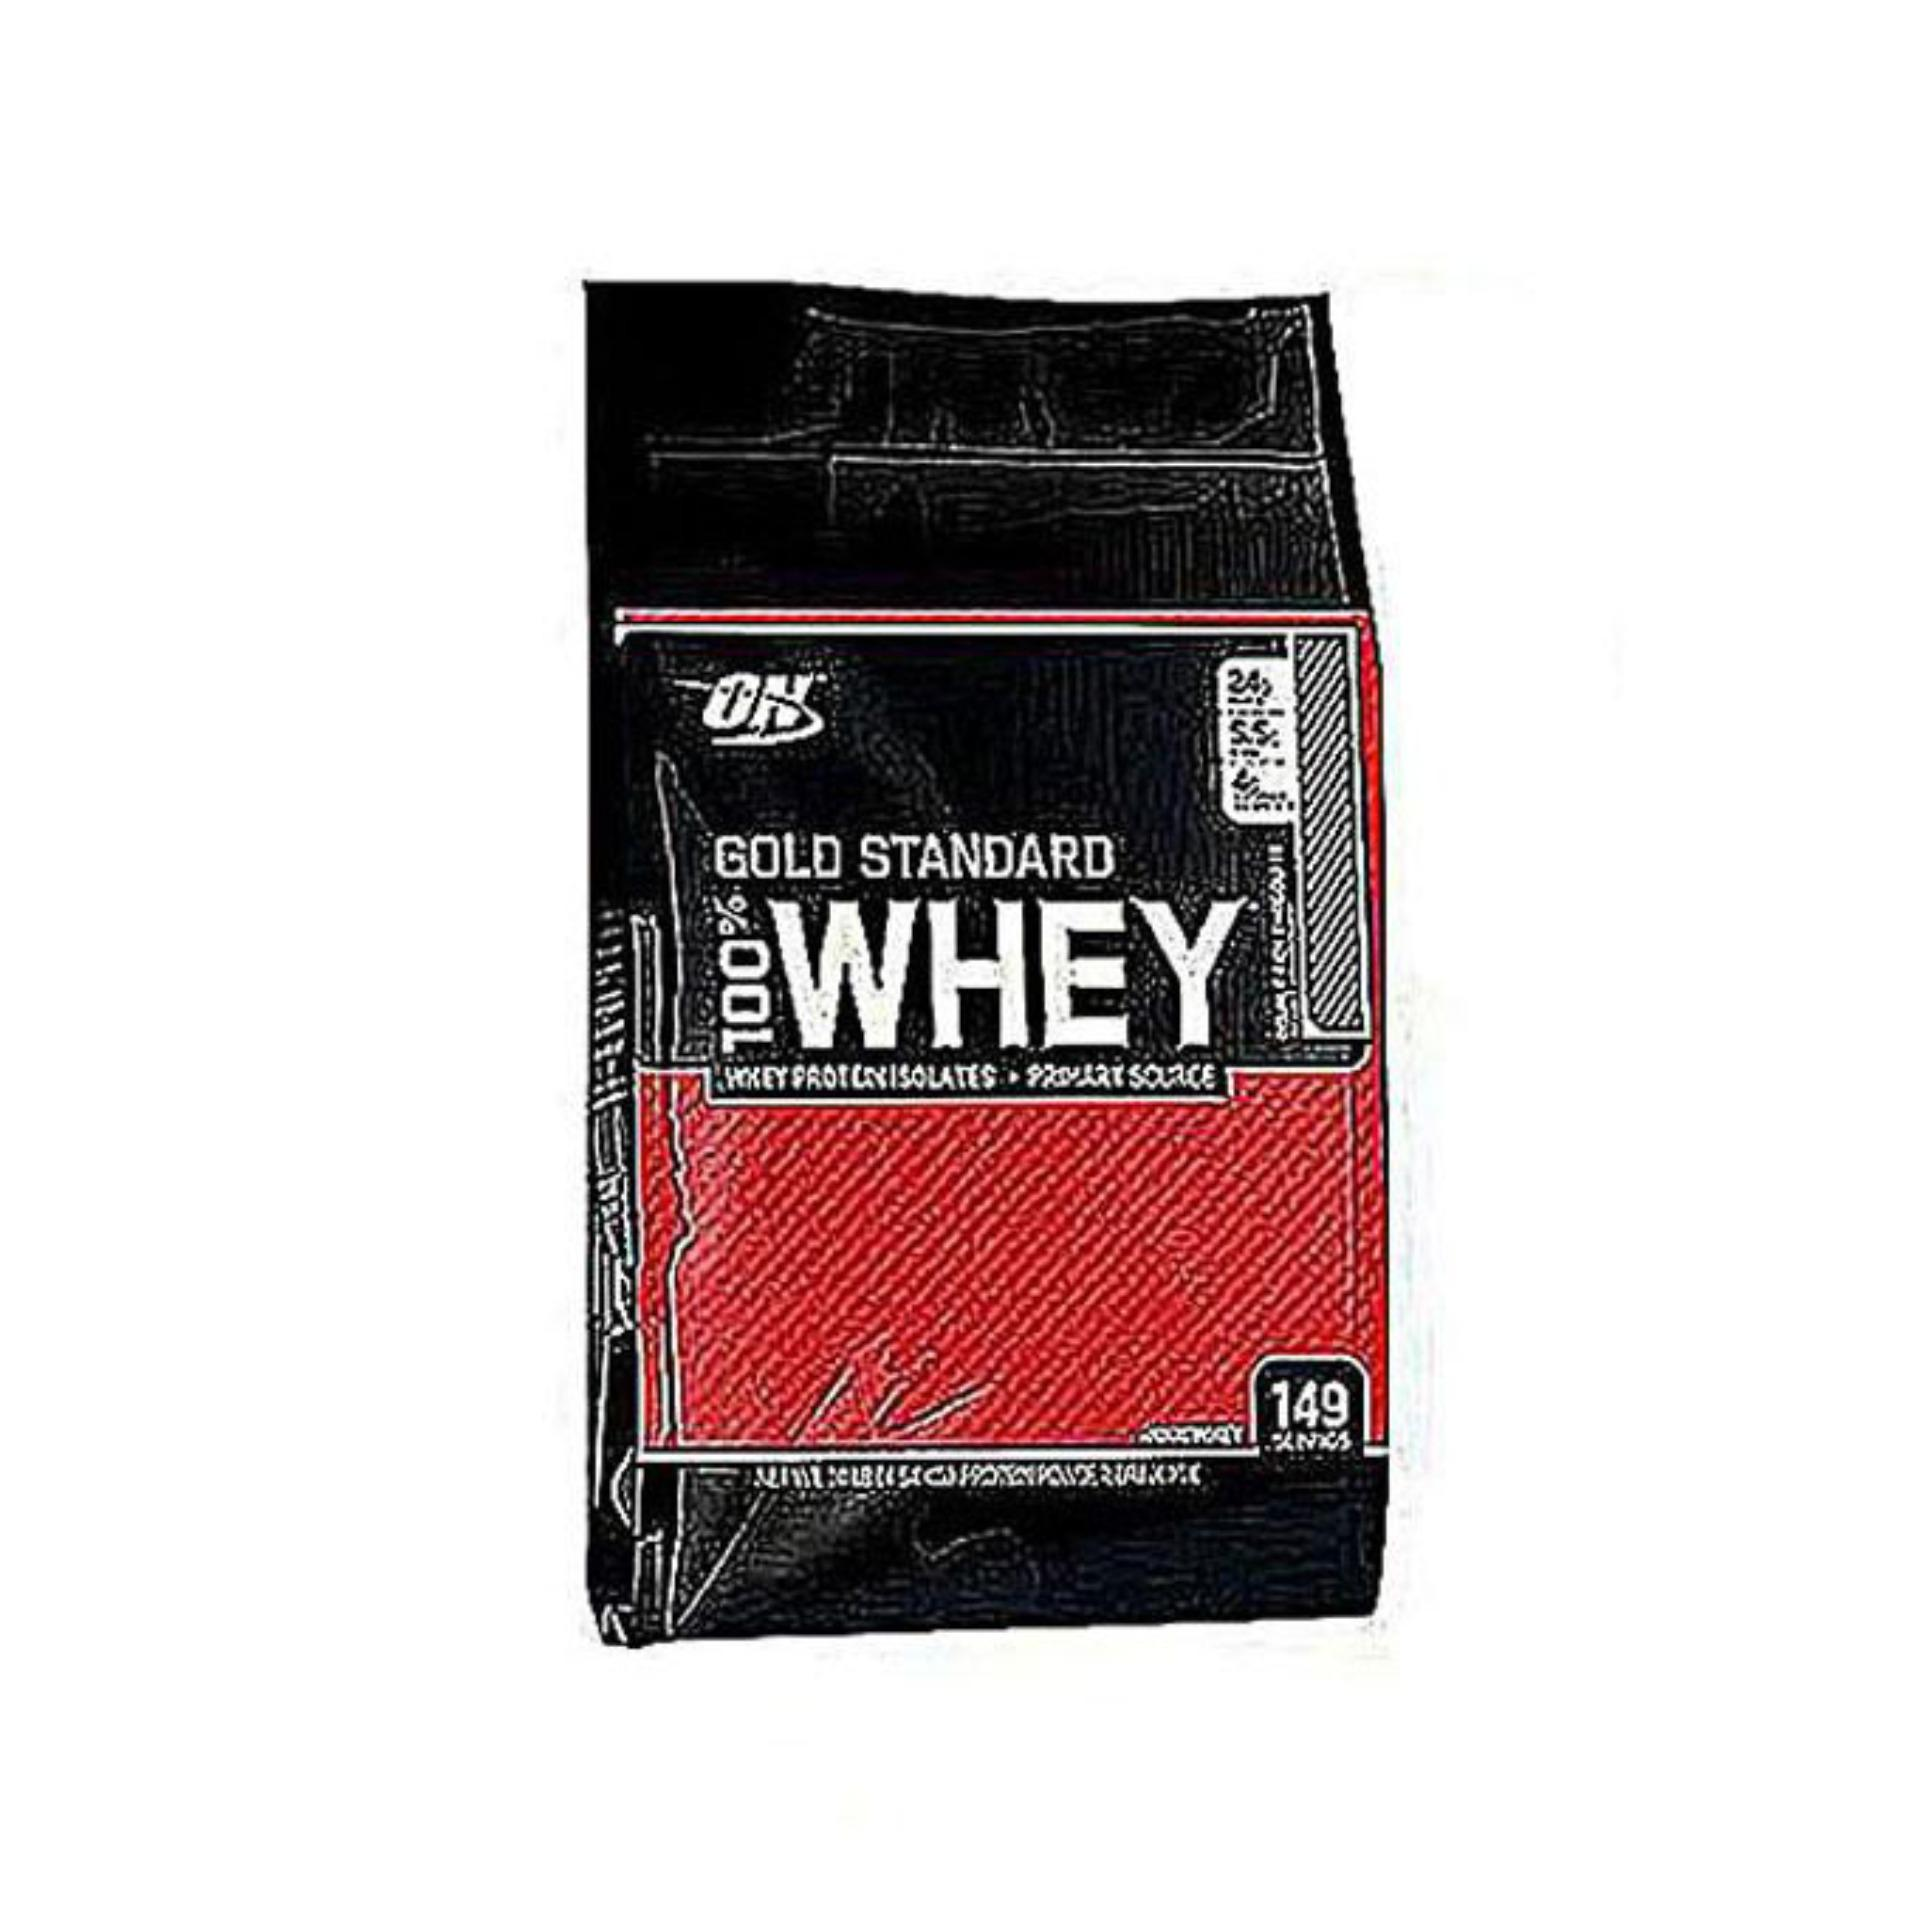 Fitness Supplements Proteins In Bangladesh At Best Price Daraz Appeton 60 Vanila Tin 900 100 Whey Gold Standard Double Rich Chocolate